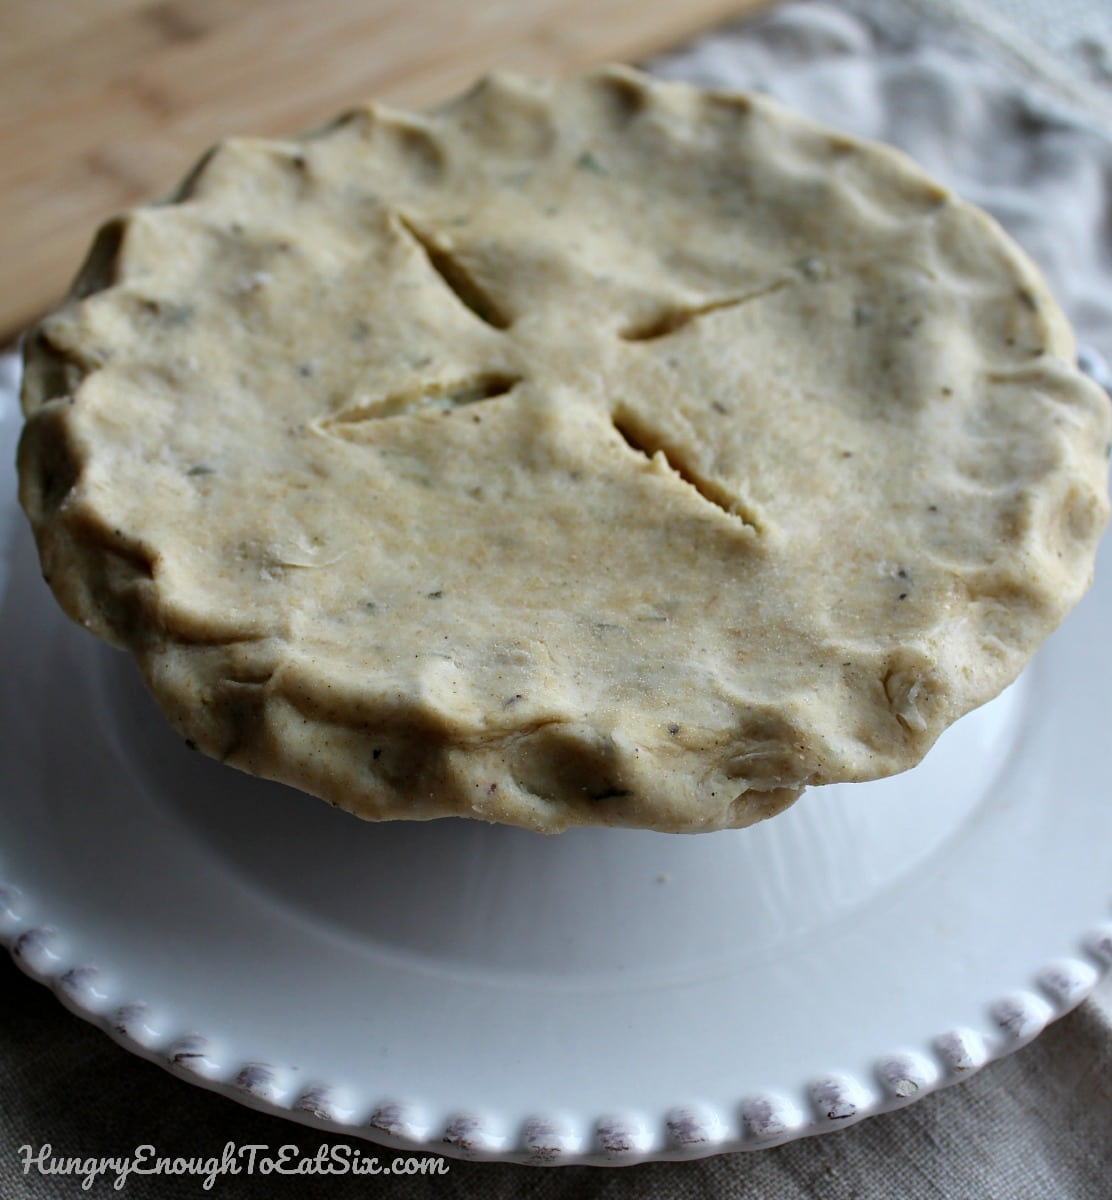 Unbaked mini pie on a white plate